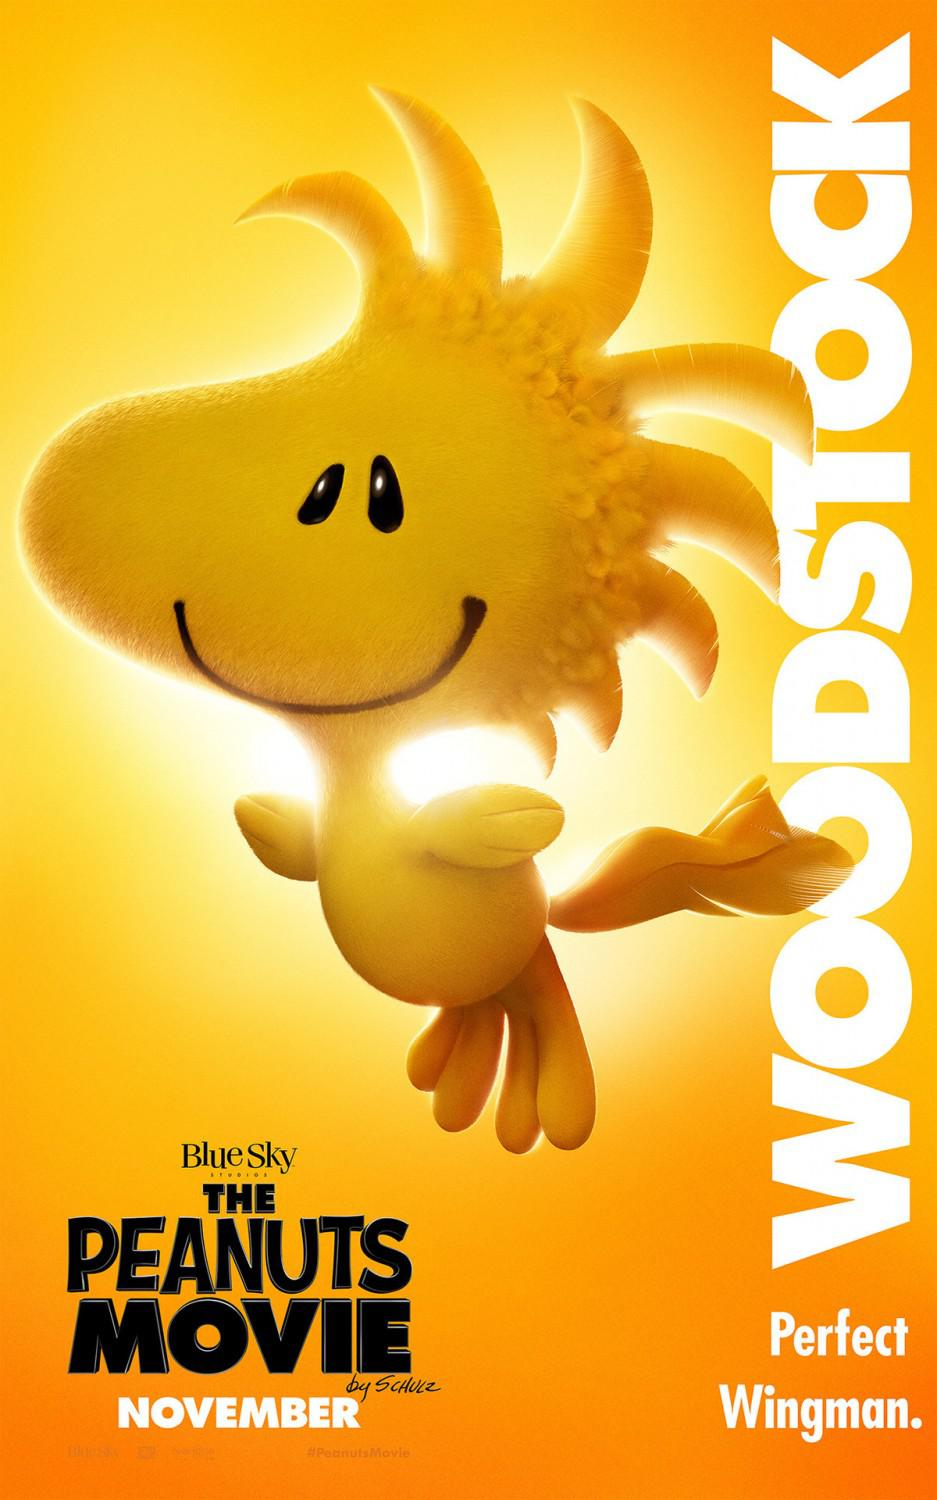 Snoopy and Charlie Brown the peanuts movie - Woodstock